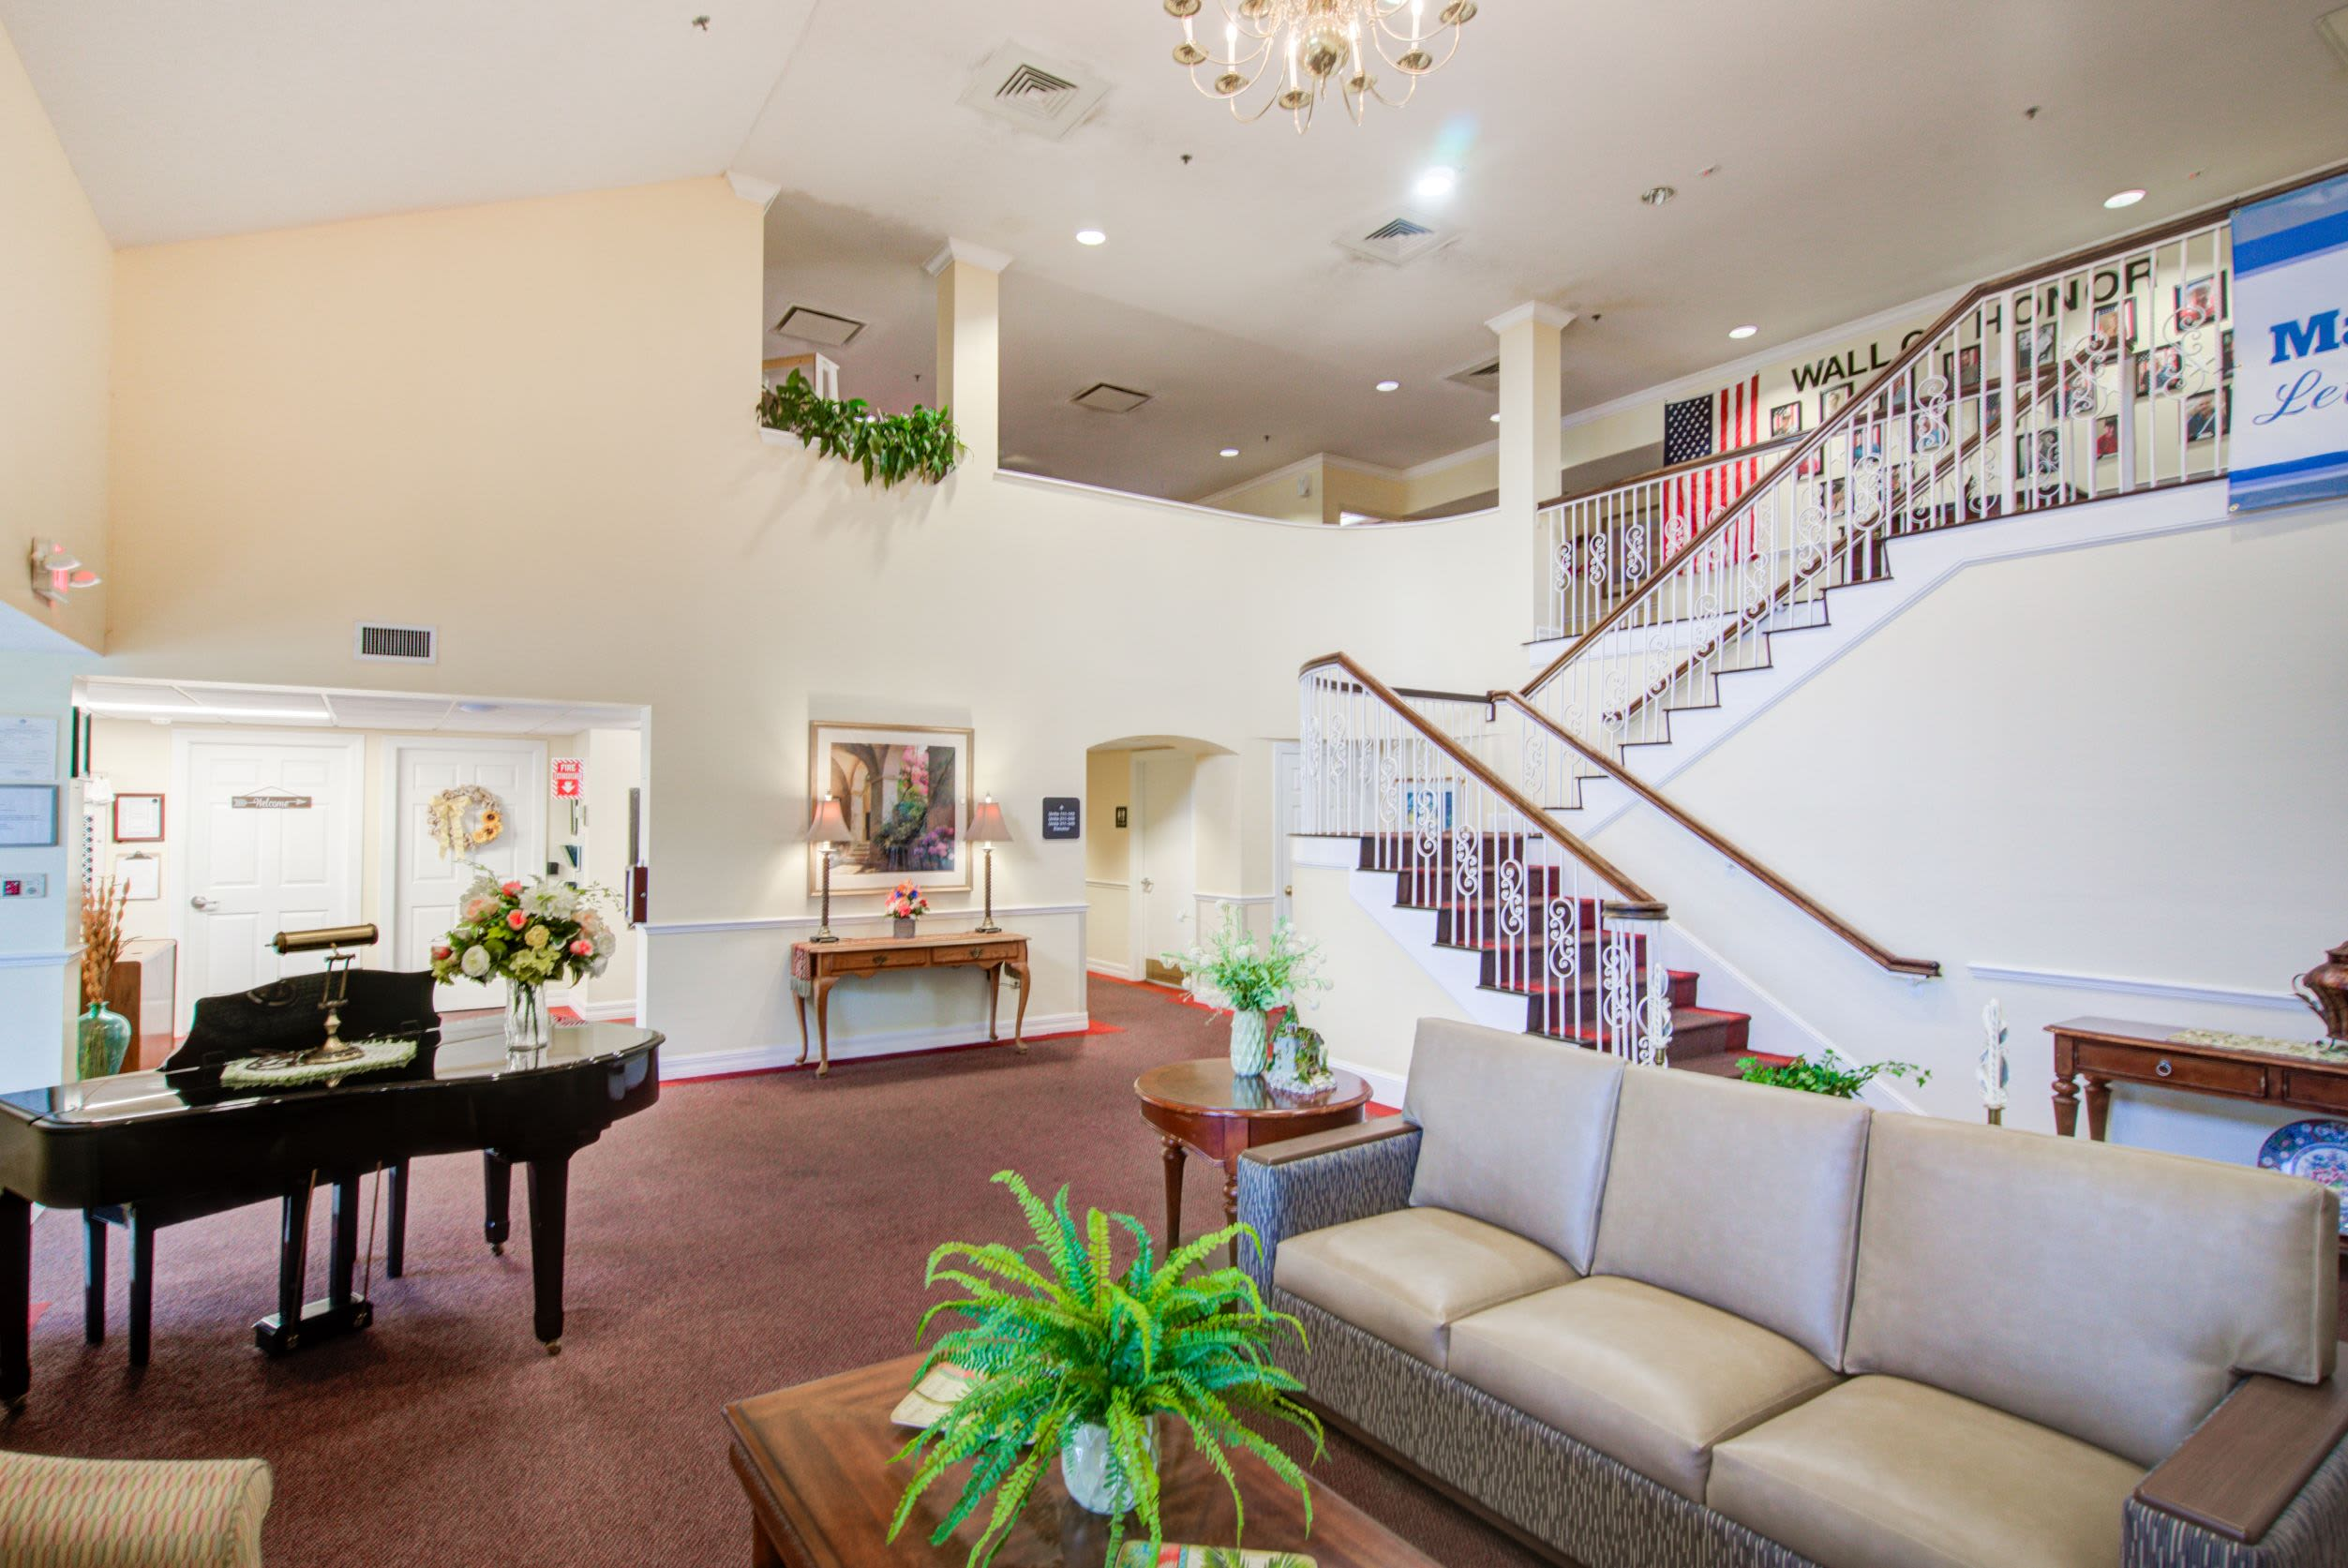 The lobby area at Truewood by Merrill, Charlotte Center in Port Charlotte, Florida.